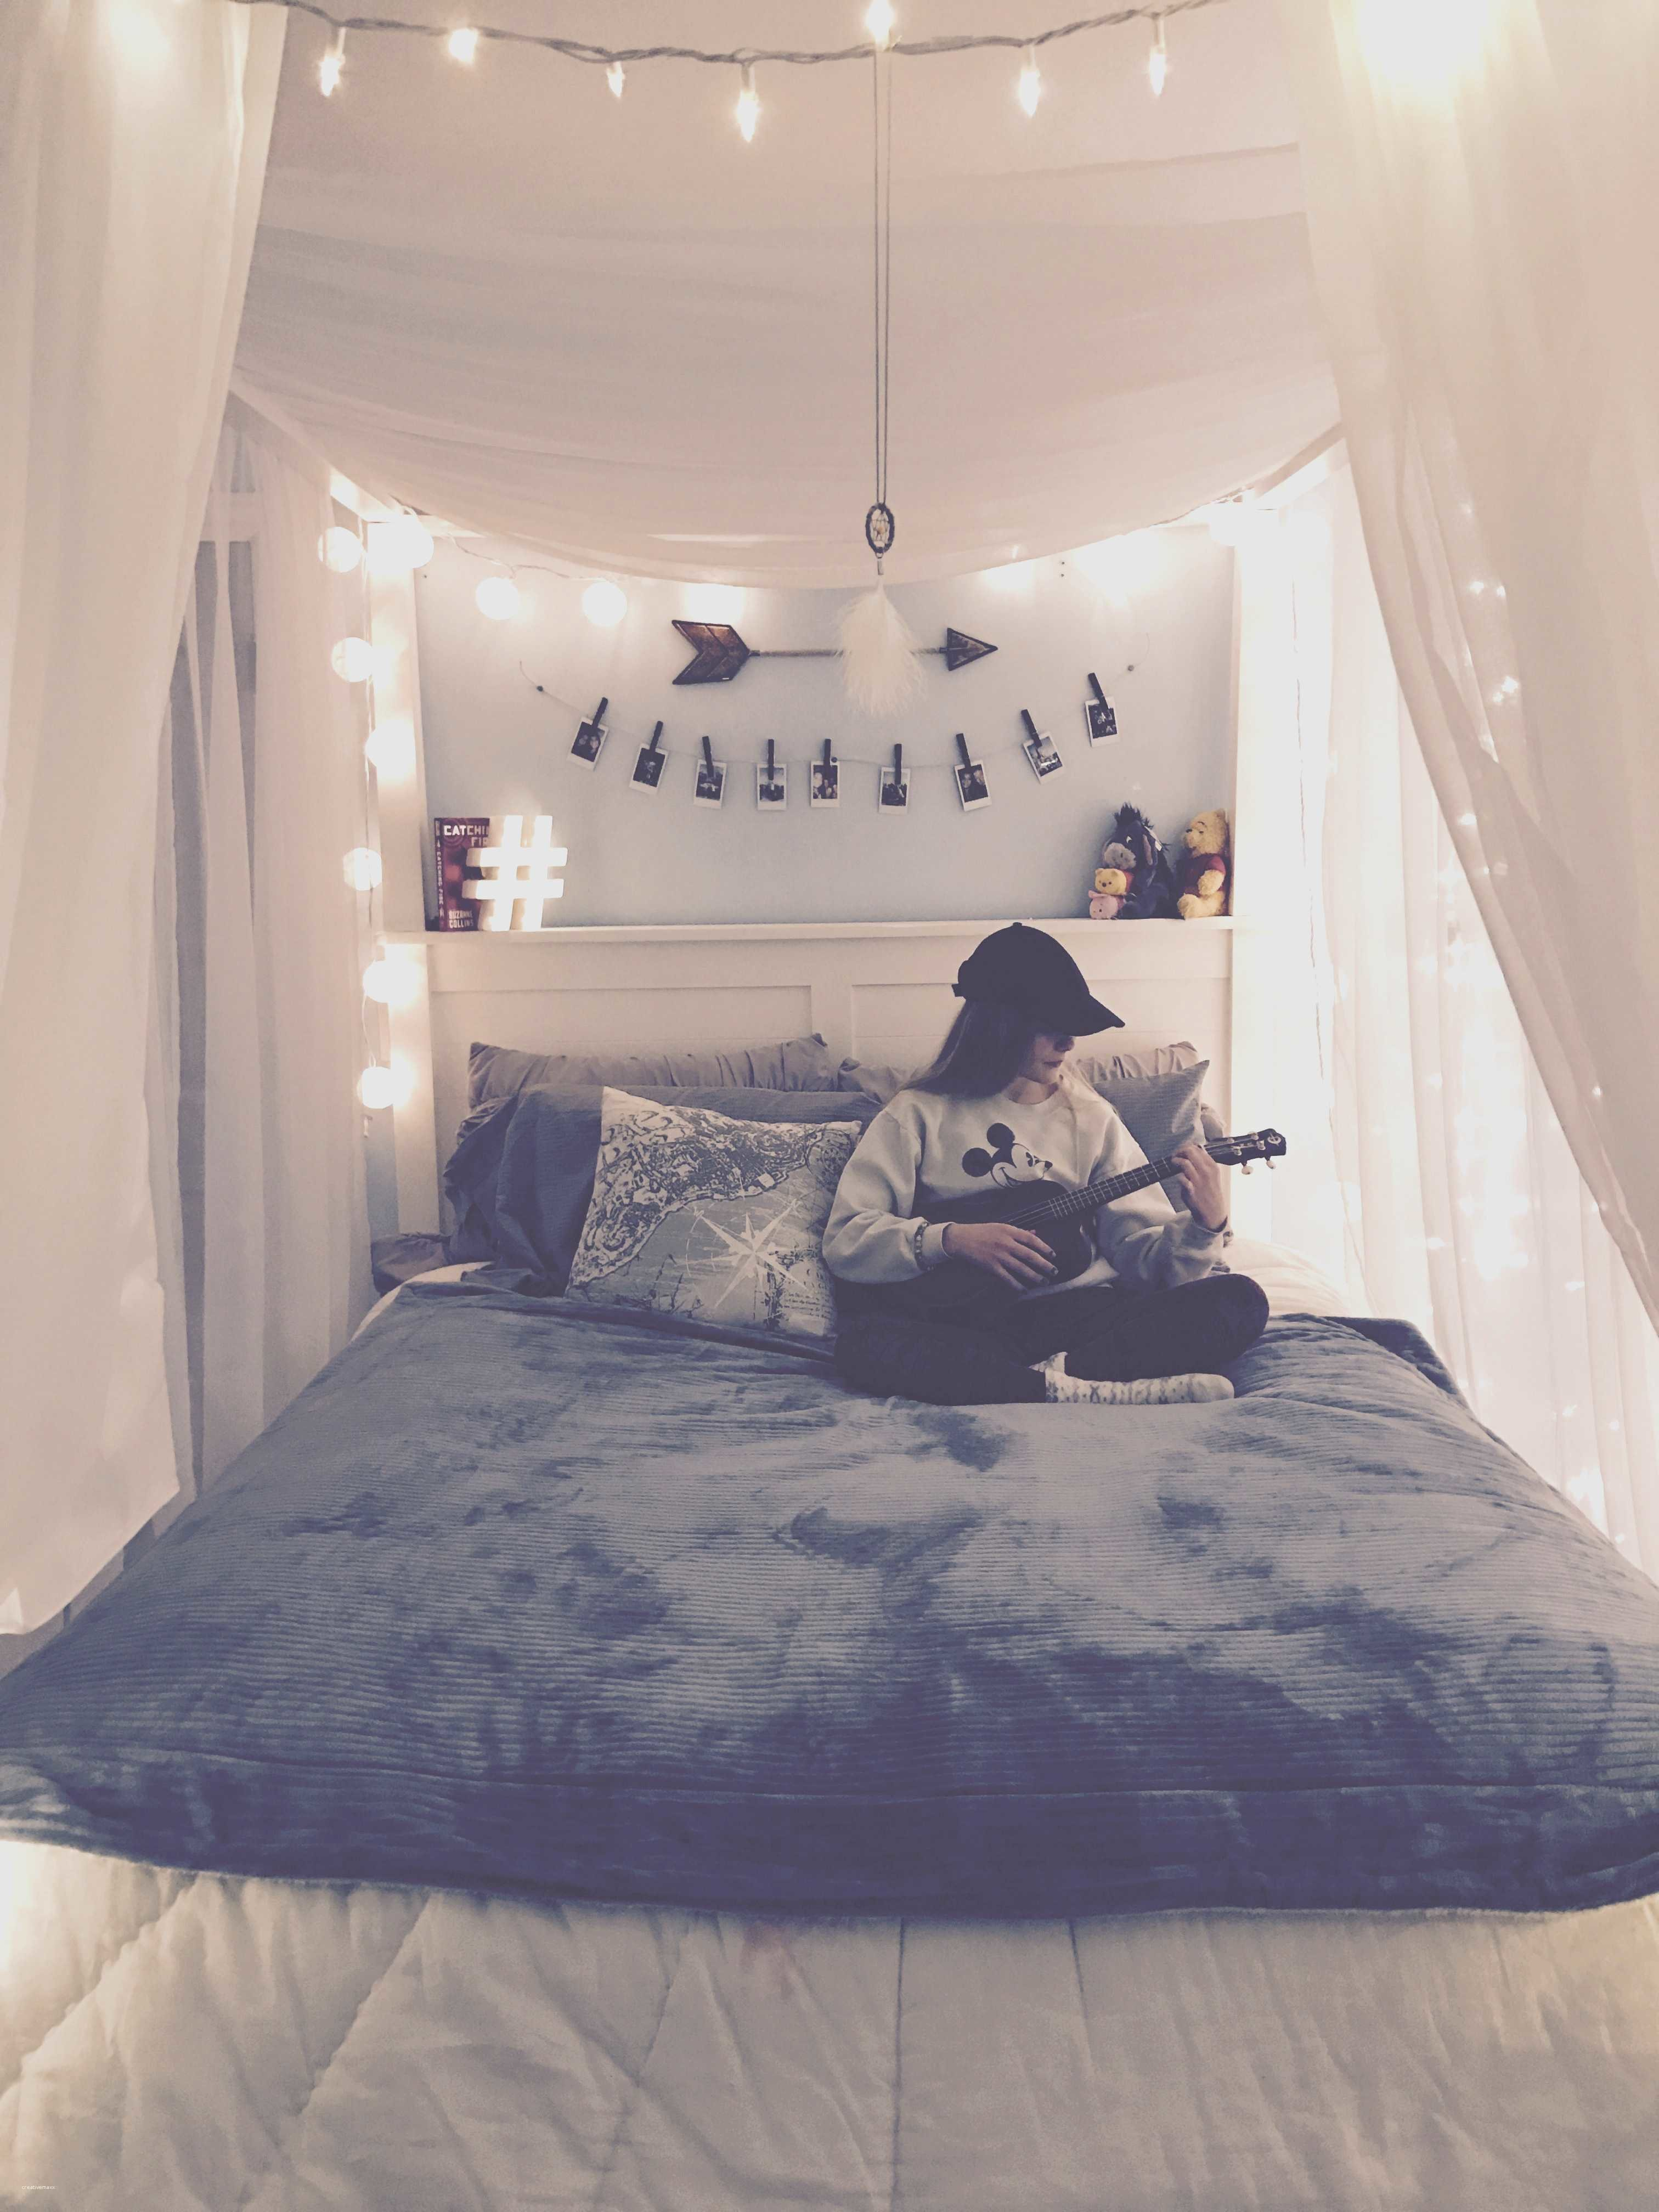 Best Fairy Lights Bedroom Tumblr Beautiful T**N Bedroom Room Decor Pinterest Creative Maxx Ideas With Pictures